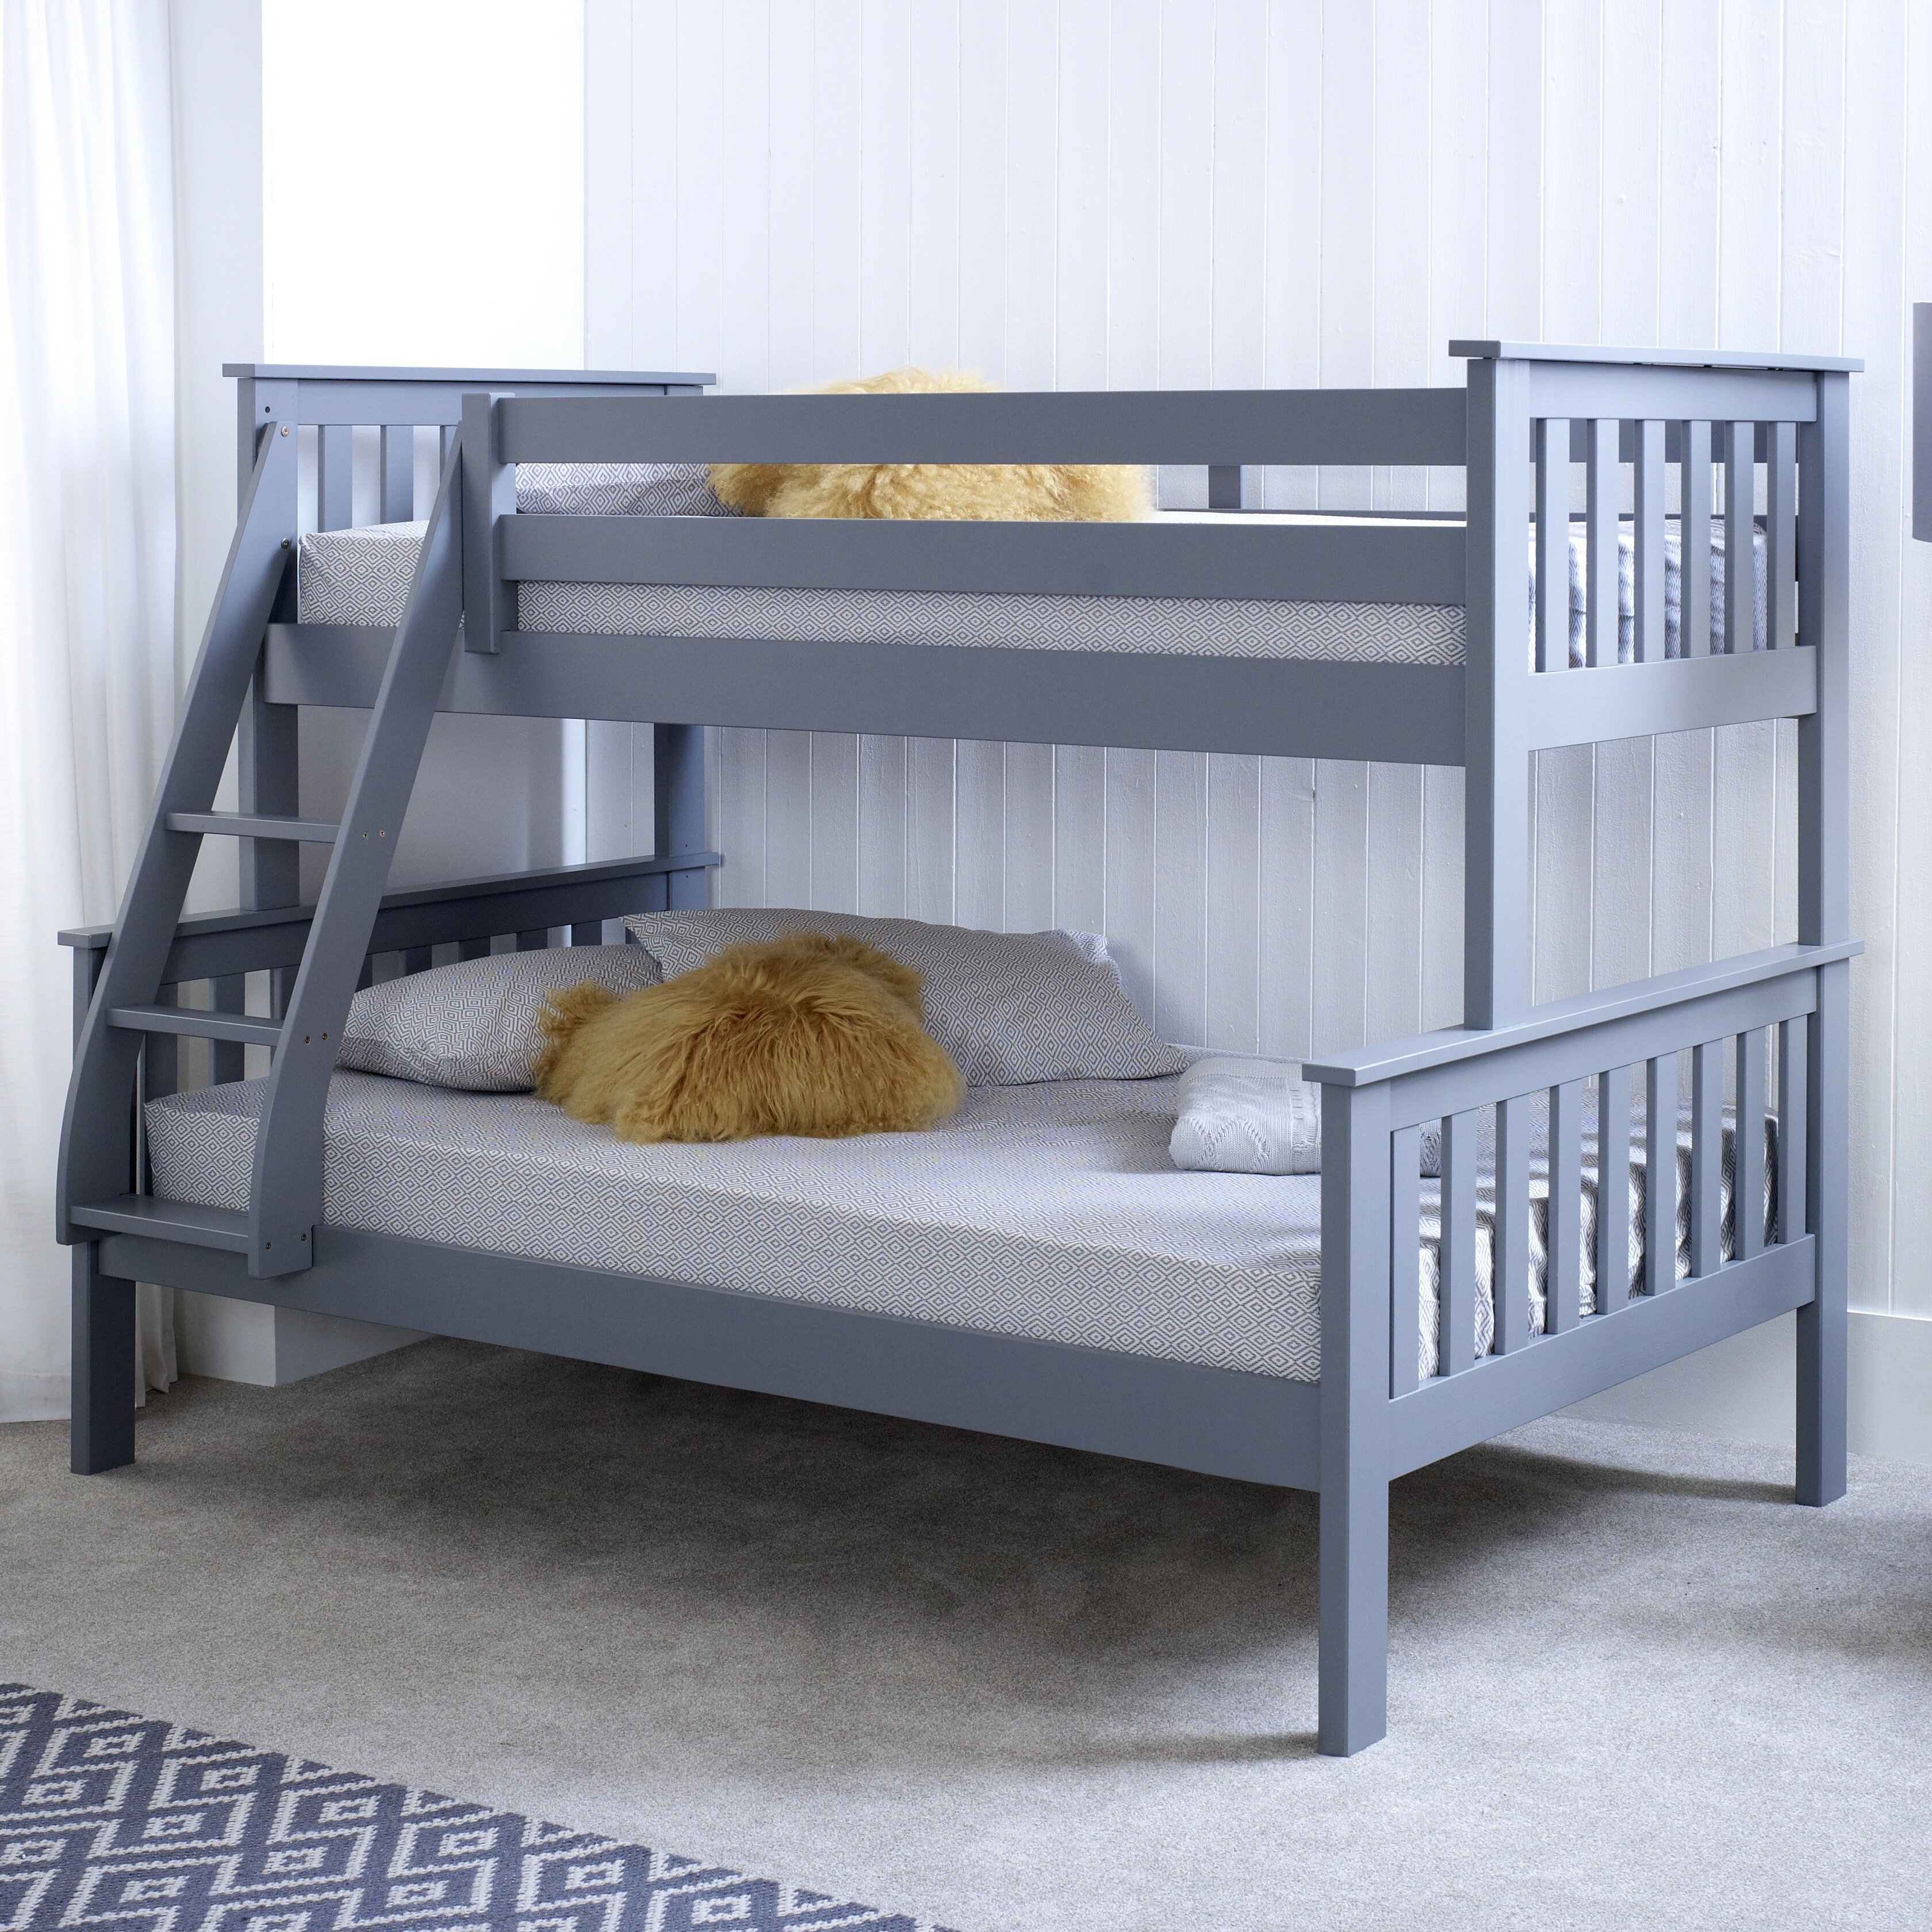 bunk beds strong metal bundle white bed adult reinforced mattress contract products with bunks